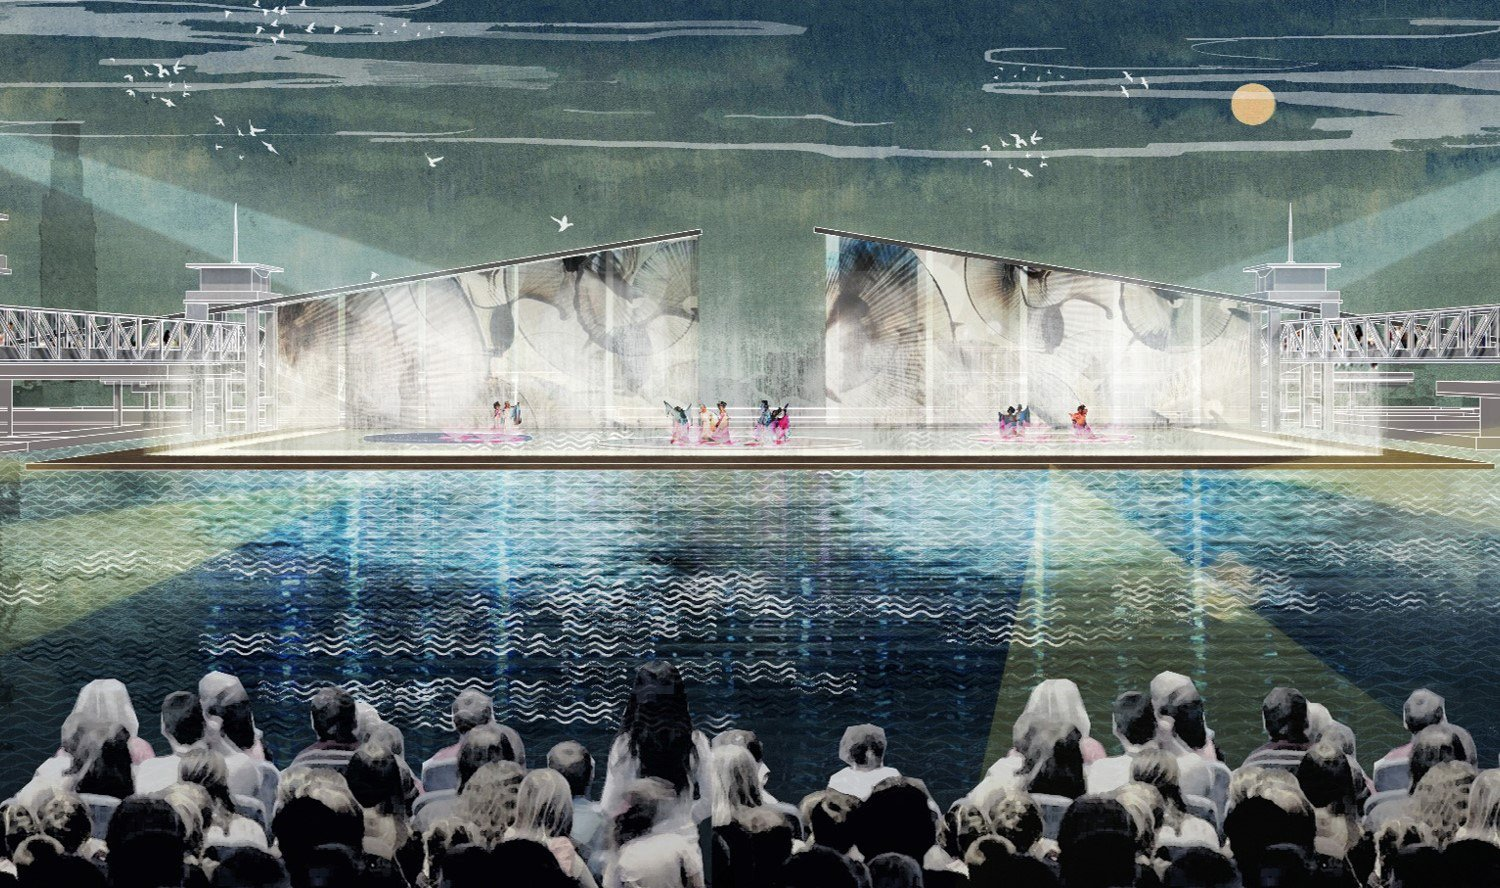 ENSURING VIBRANCY IN ALL CONDITIONS: Public seating areas are elevated above the high water level to allow for outdoor performances even in flood conditions, promoting public understanding and appreciation SASAKI}